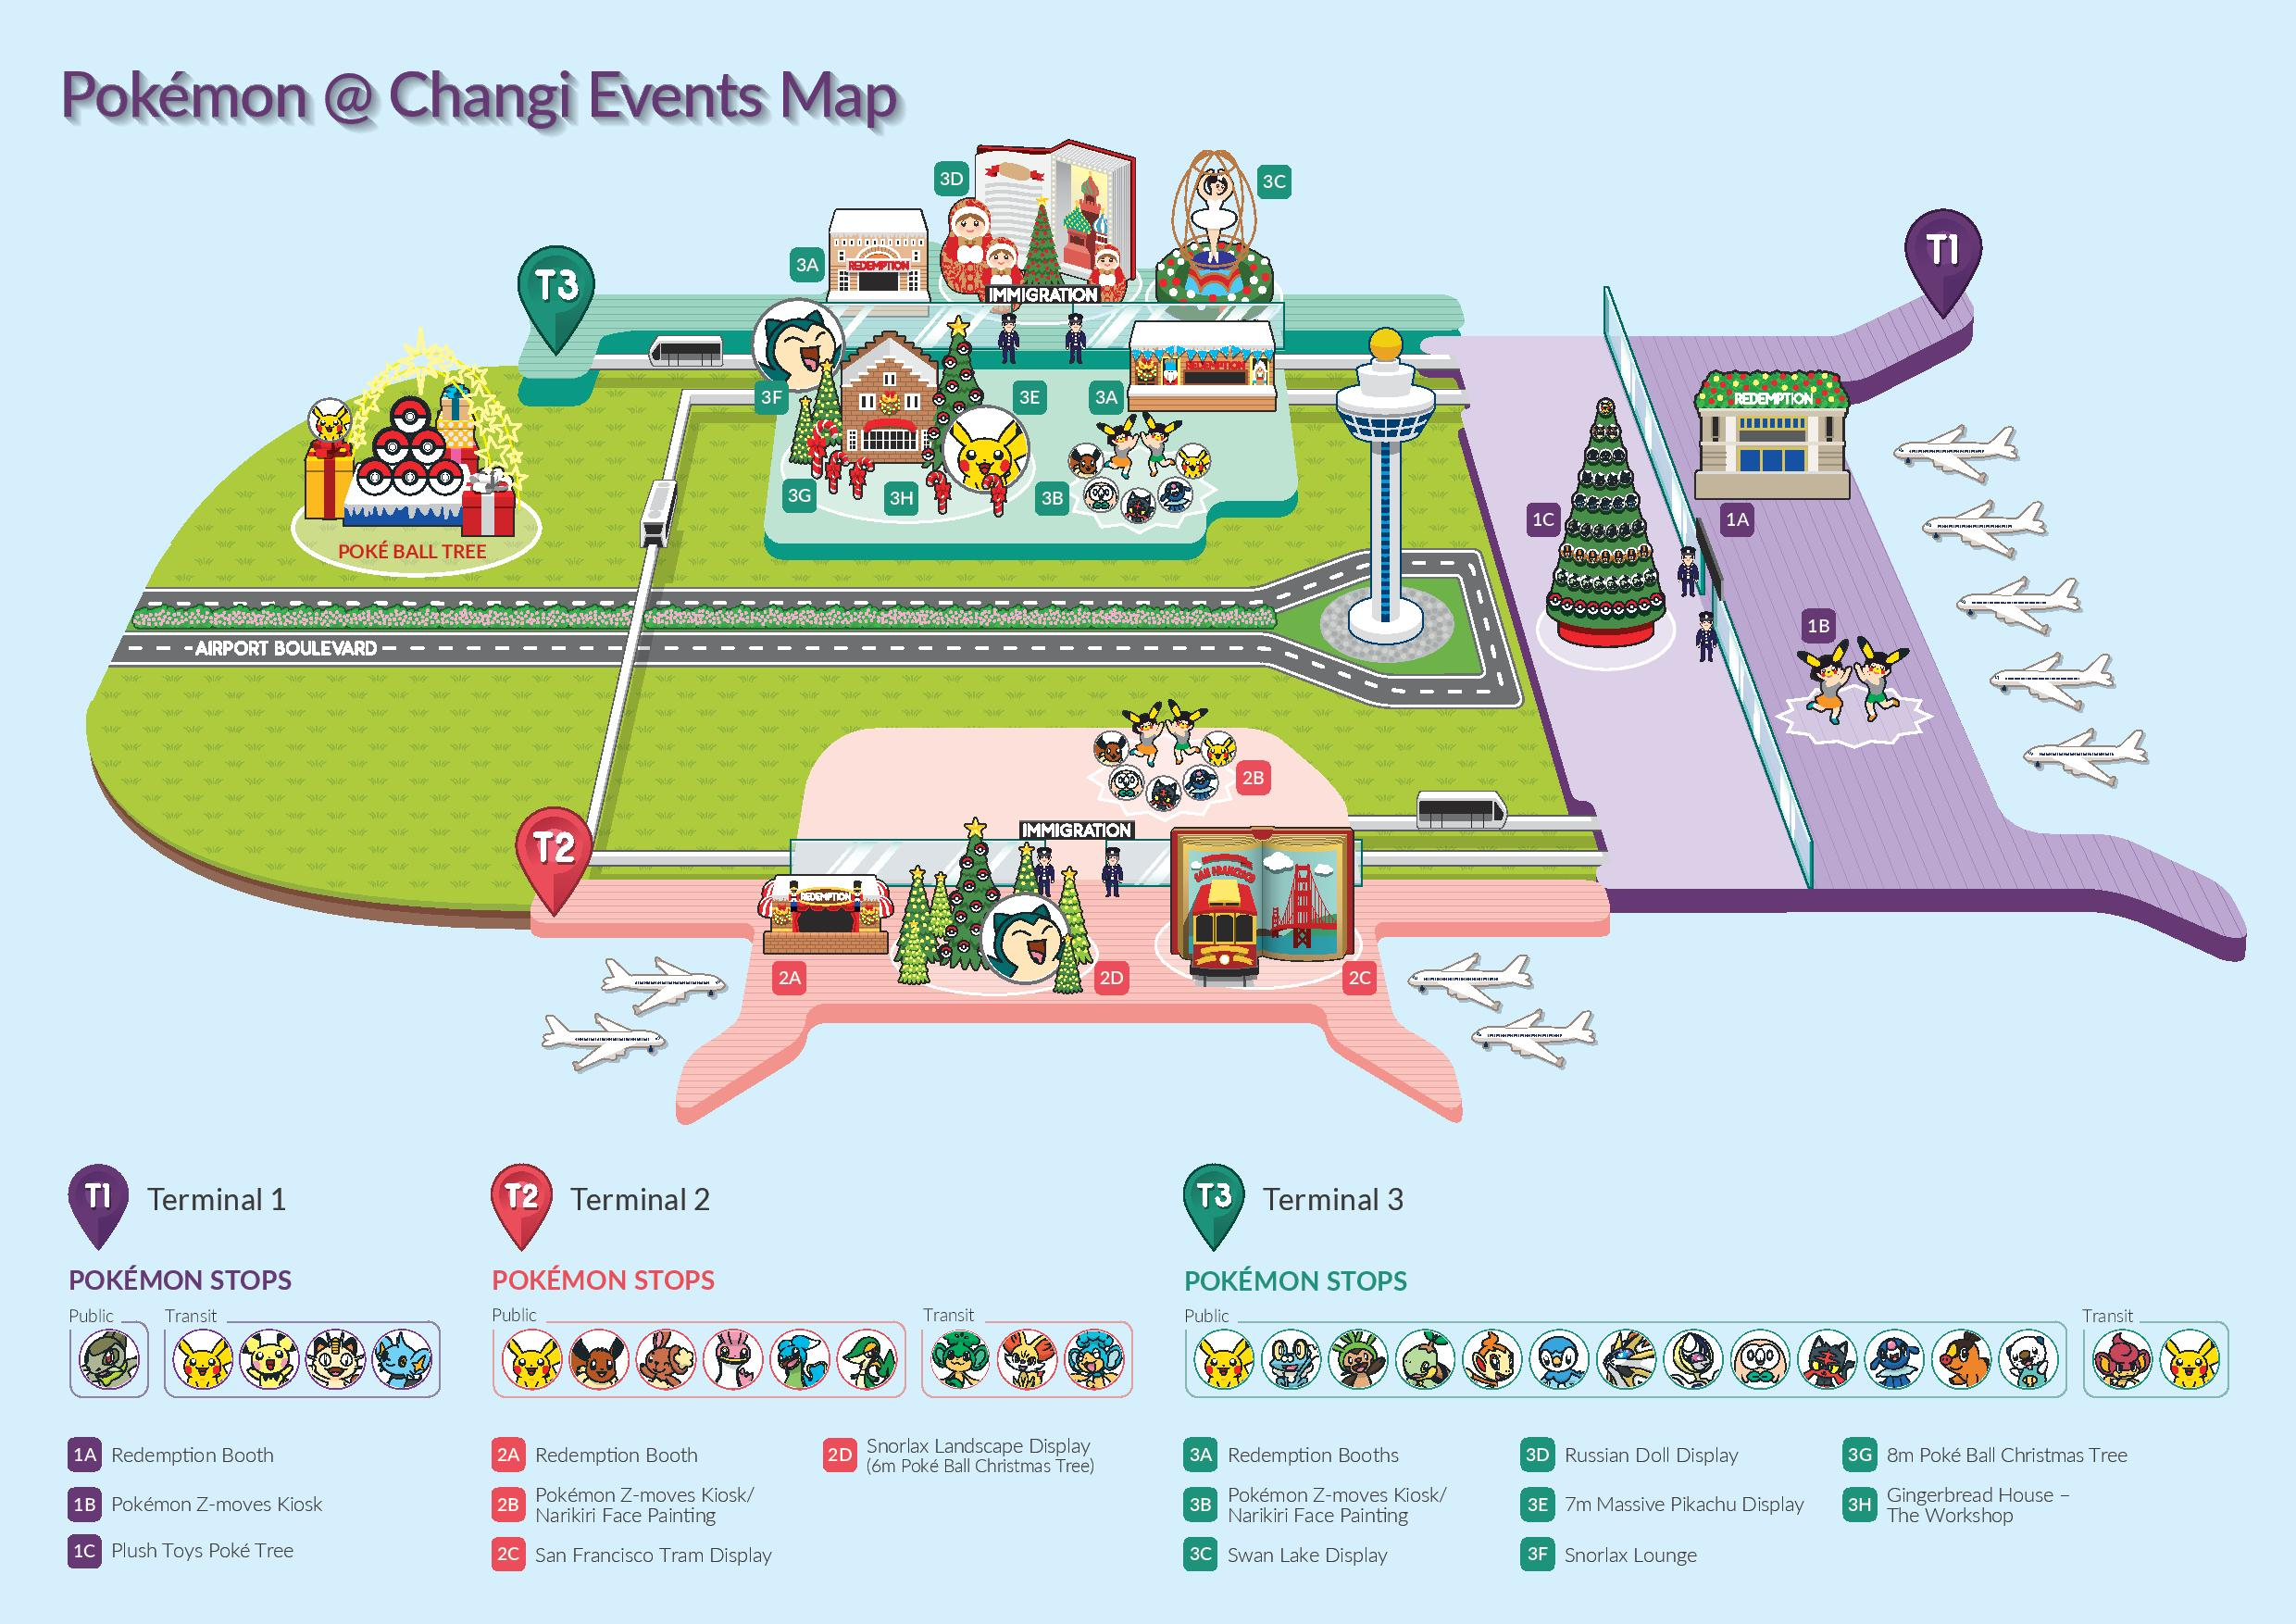 events-map-page-001